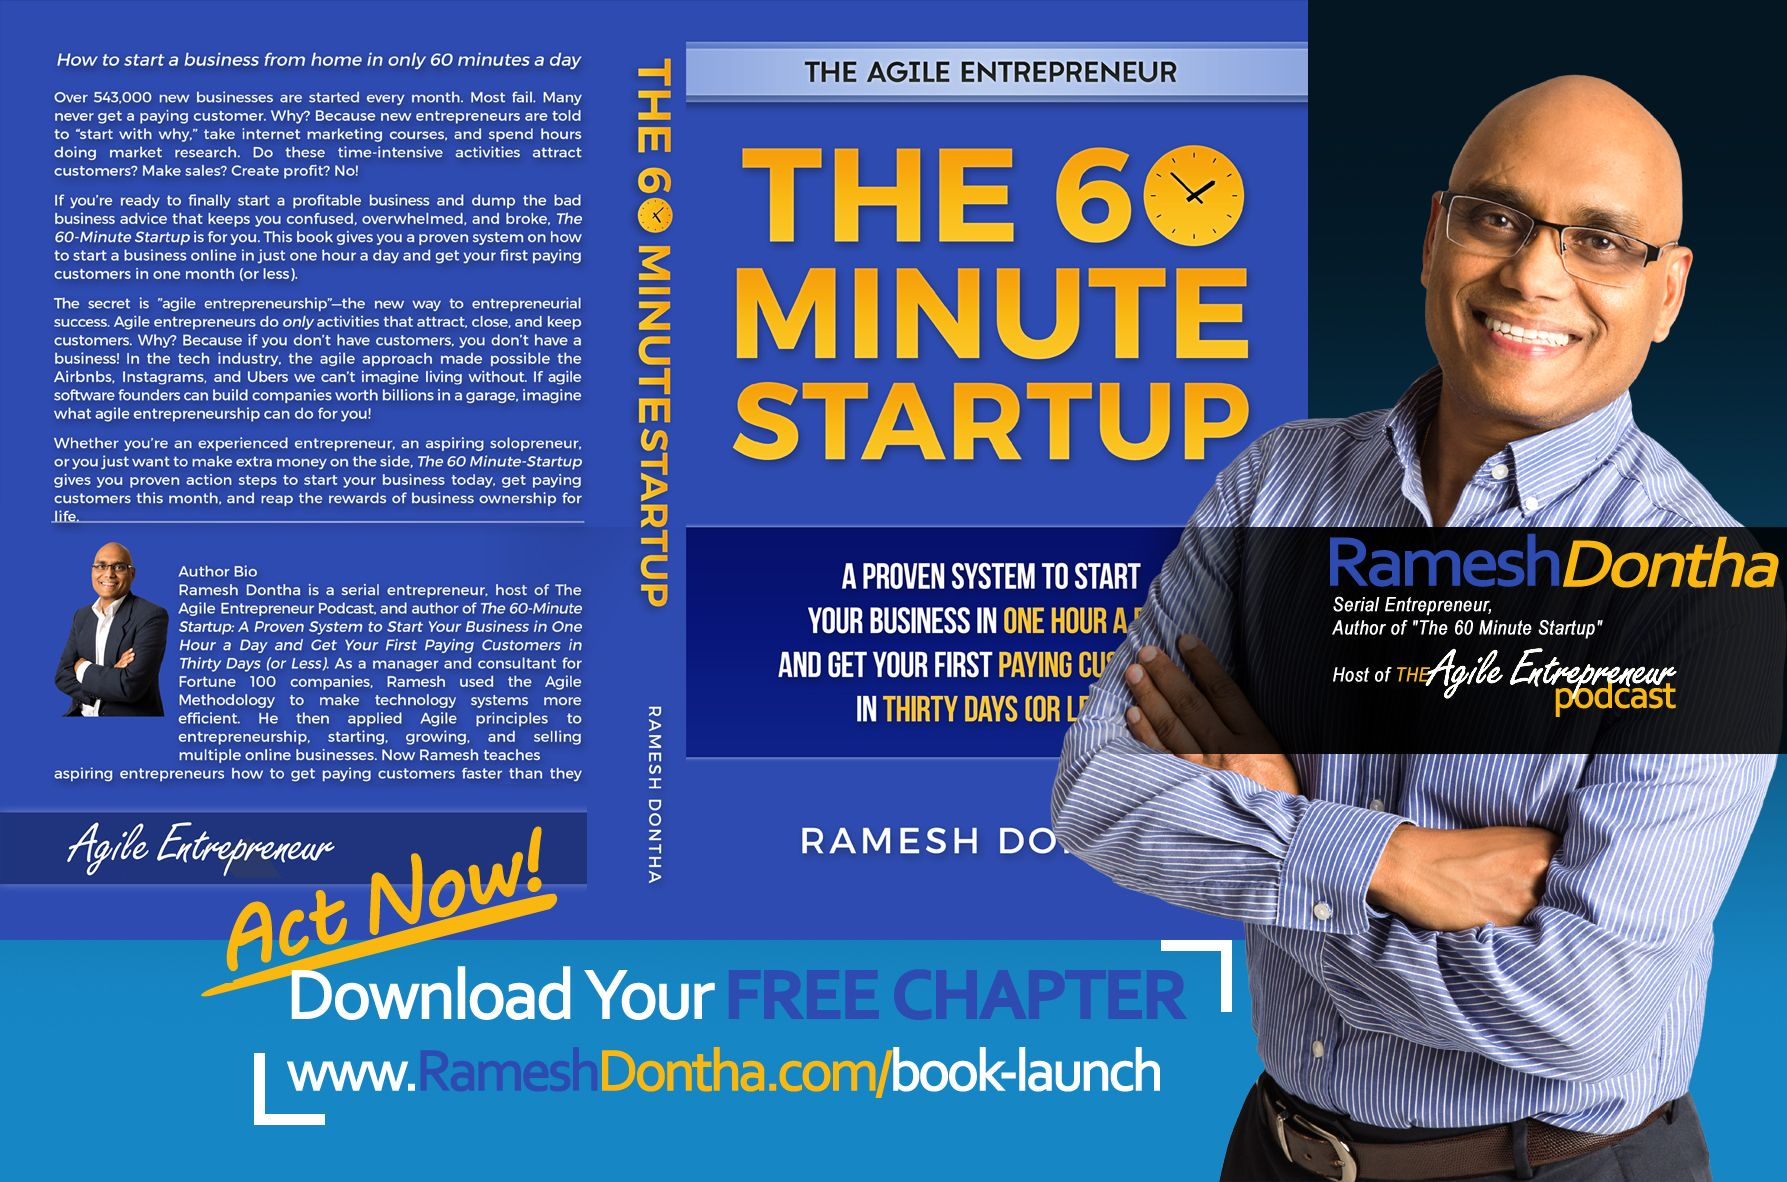 Entrepreneur Author Ramesh Dontha - The 60 Minute